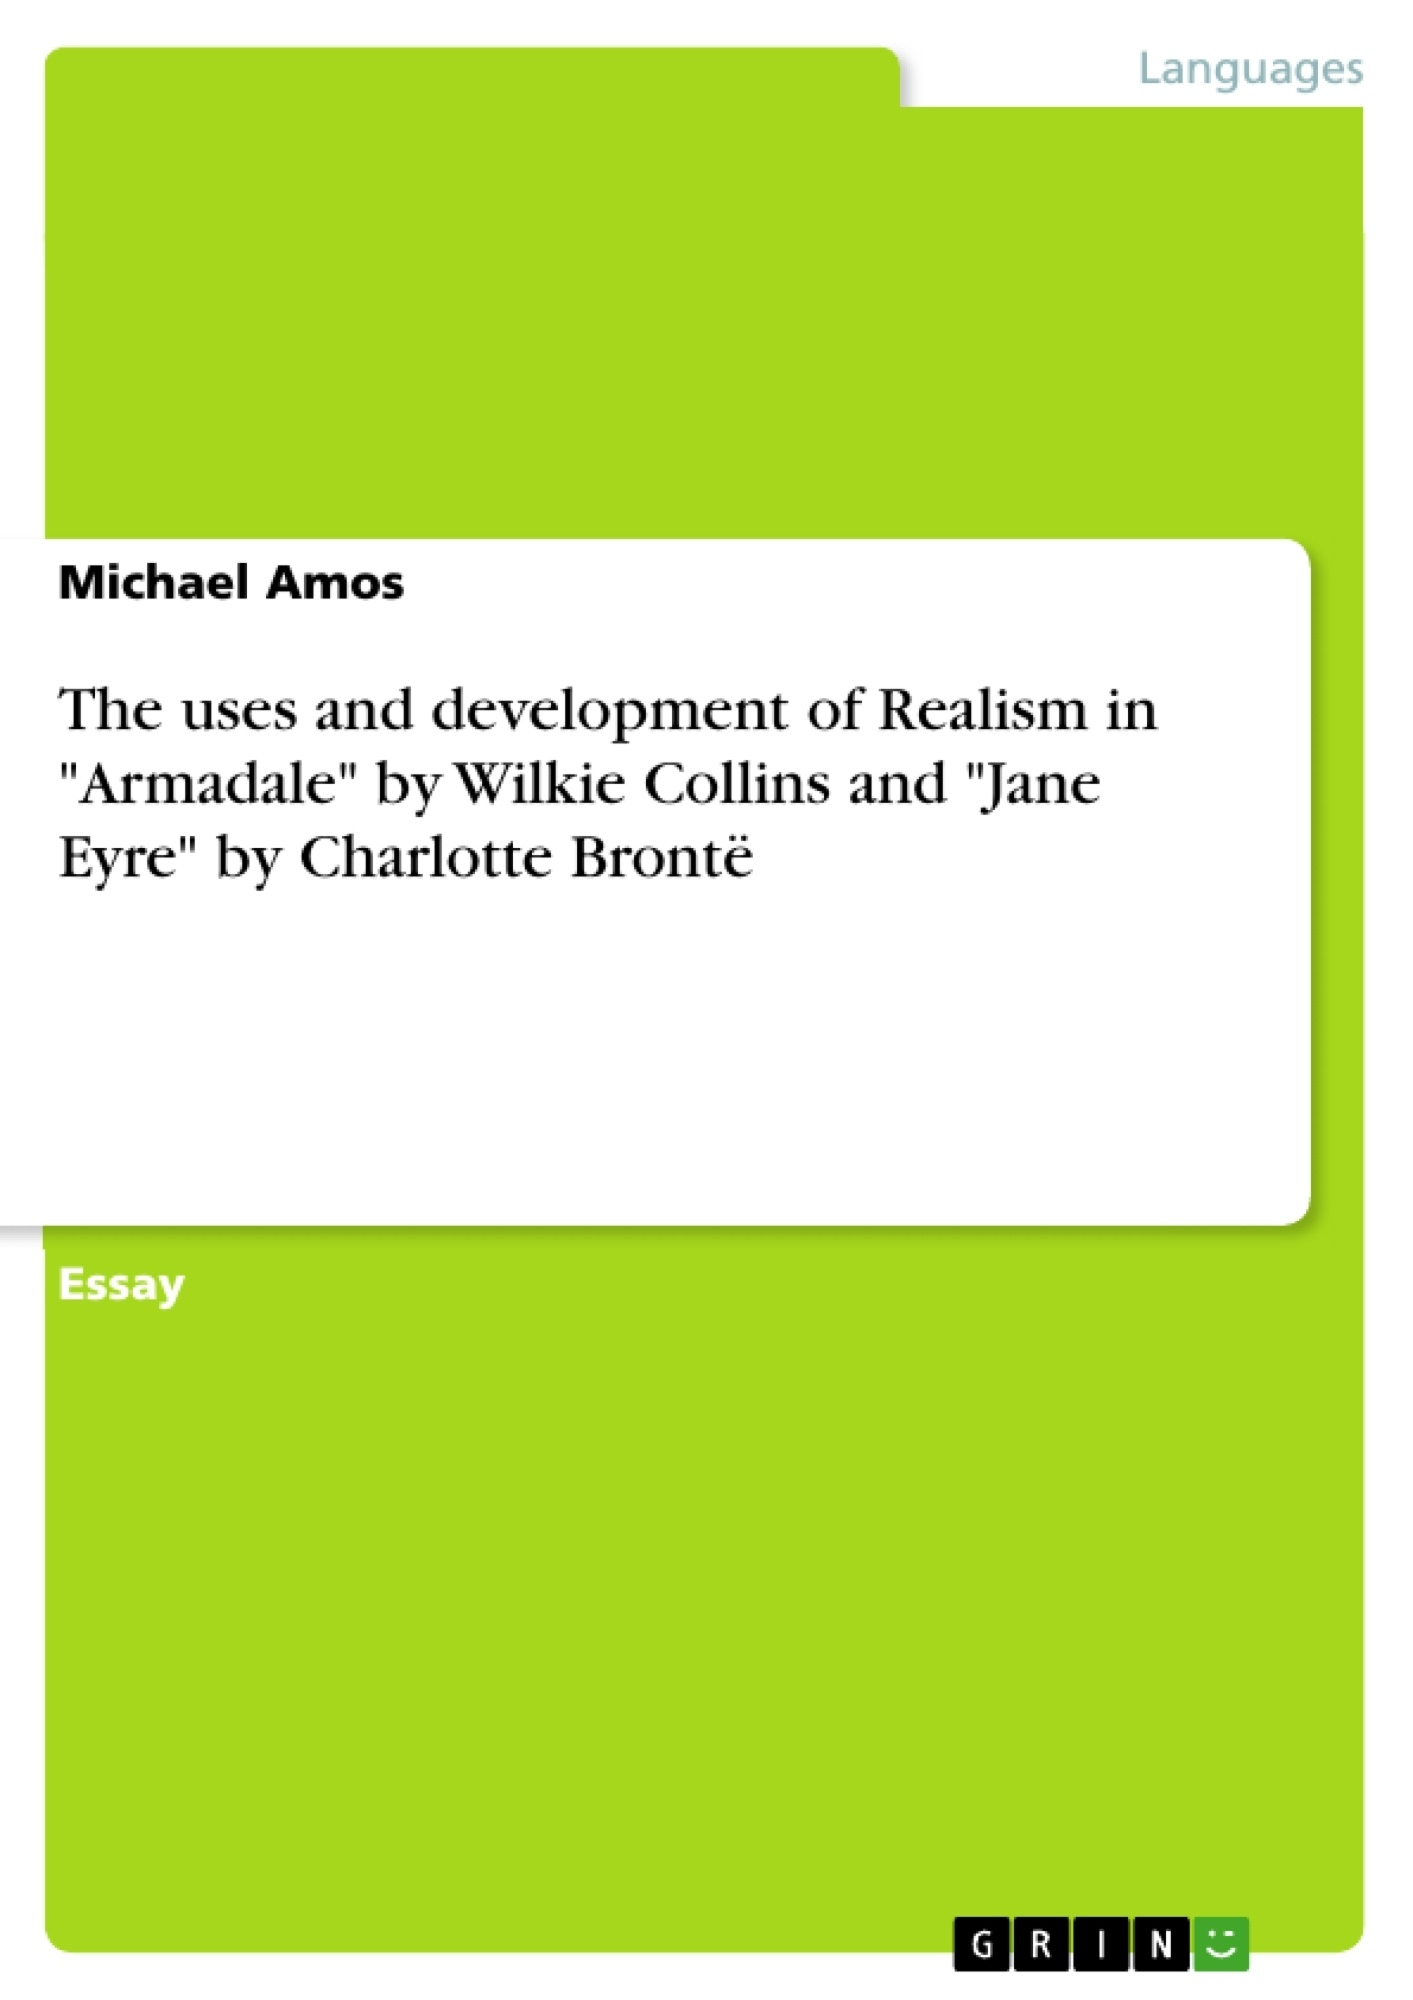 """Title: The uses and development of Realism in """"Armadale"""" by Wilkie Collins and """"Jane Eyre"""" by Charlotte Brontë"""